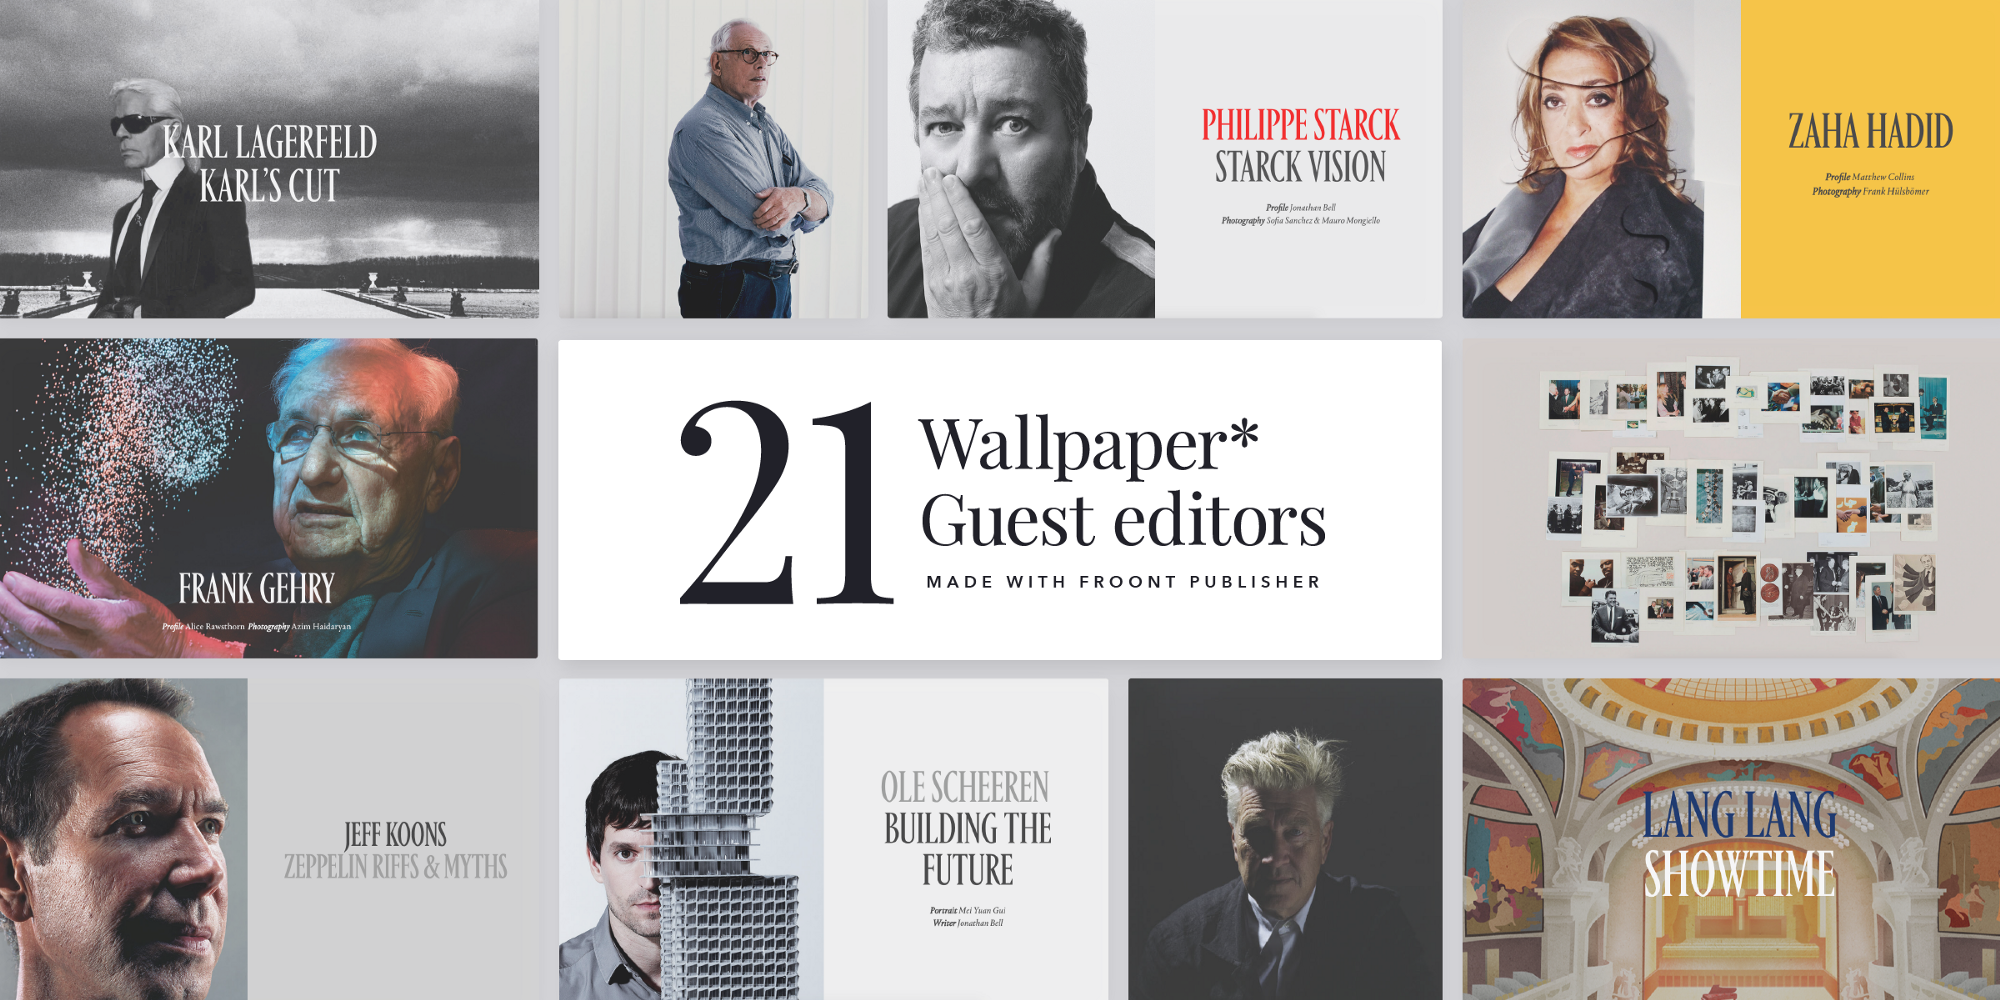 Case Study Wallpaper Magazine Creates Its Largest Ever Digital Publication Using Froont Publisher